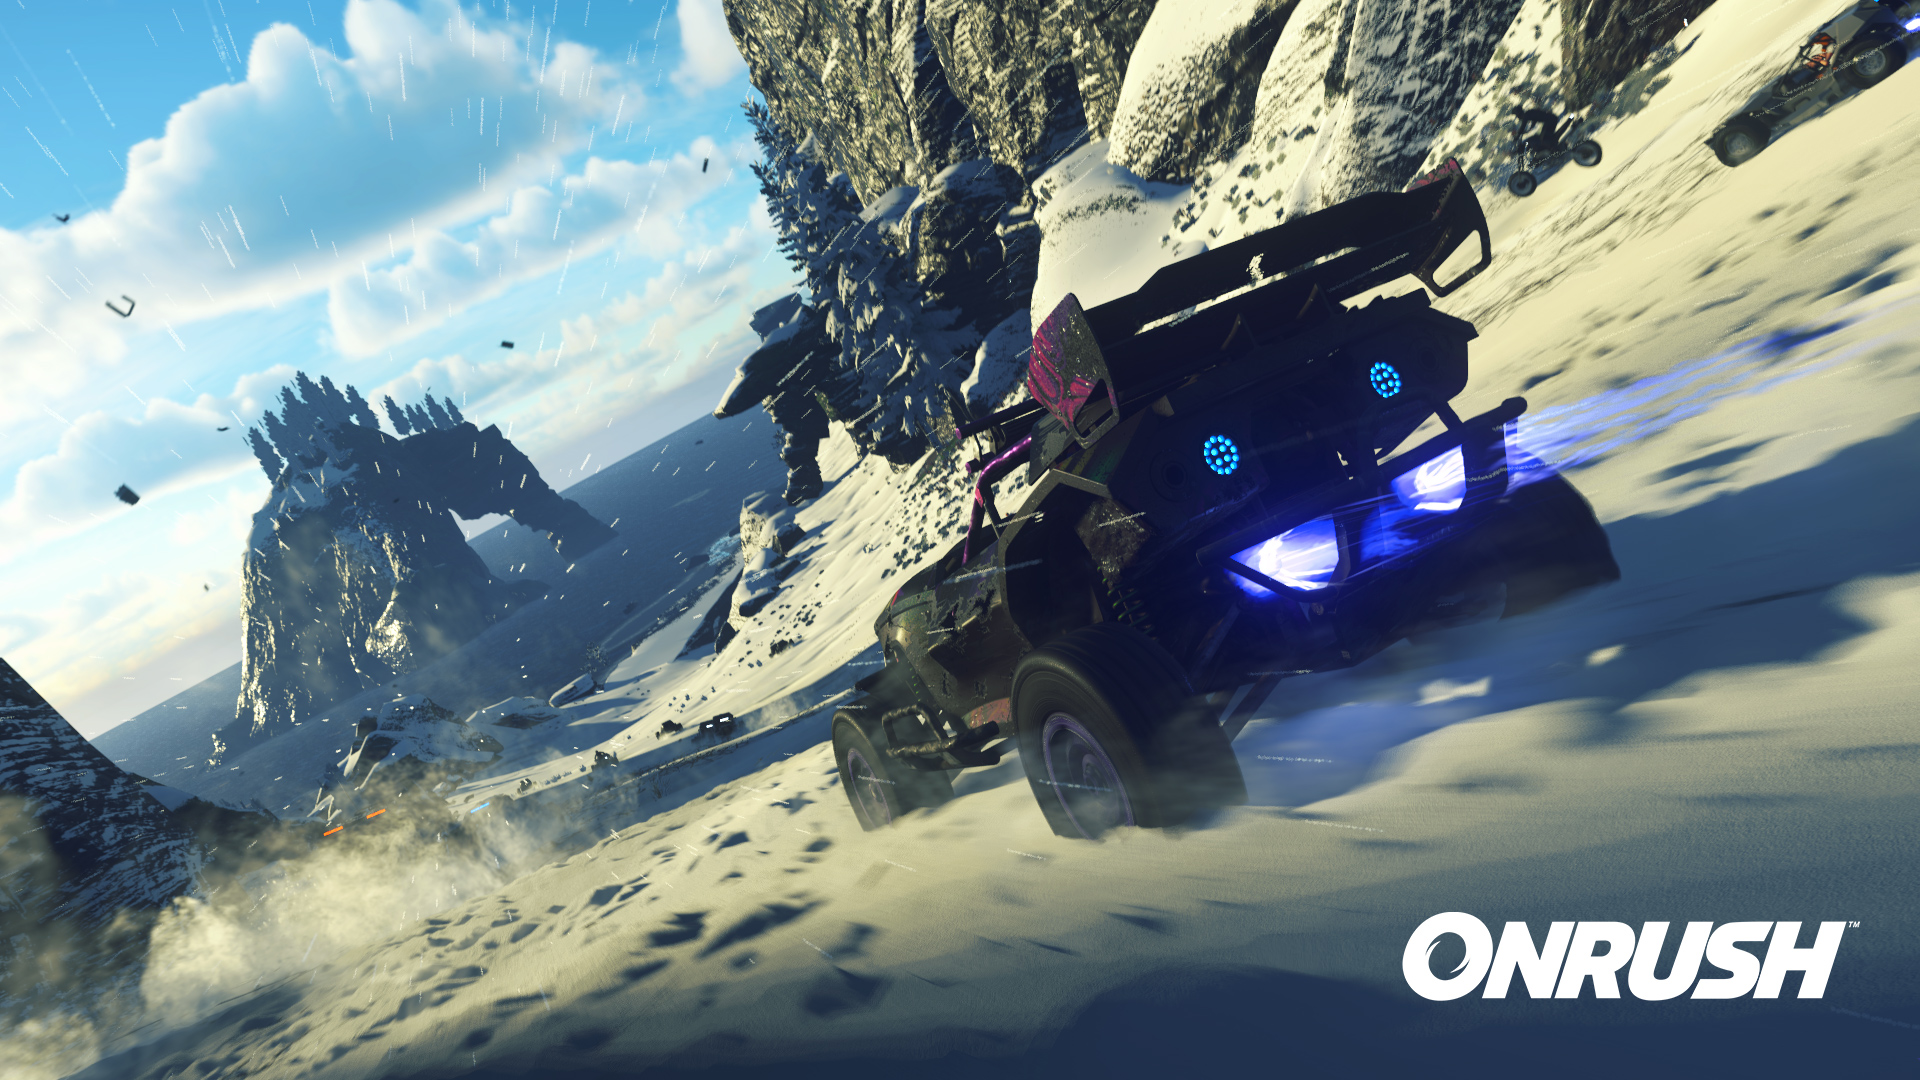 Let's go on an arcade racing rampage in the Onrush beta screenshot